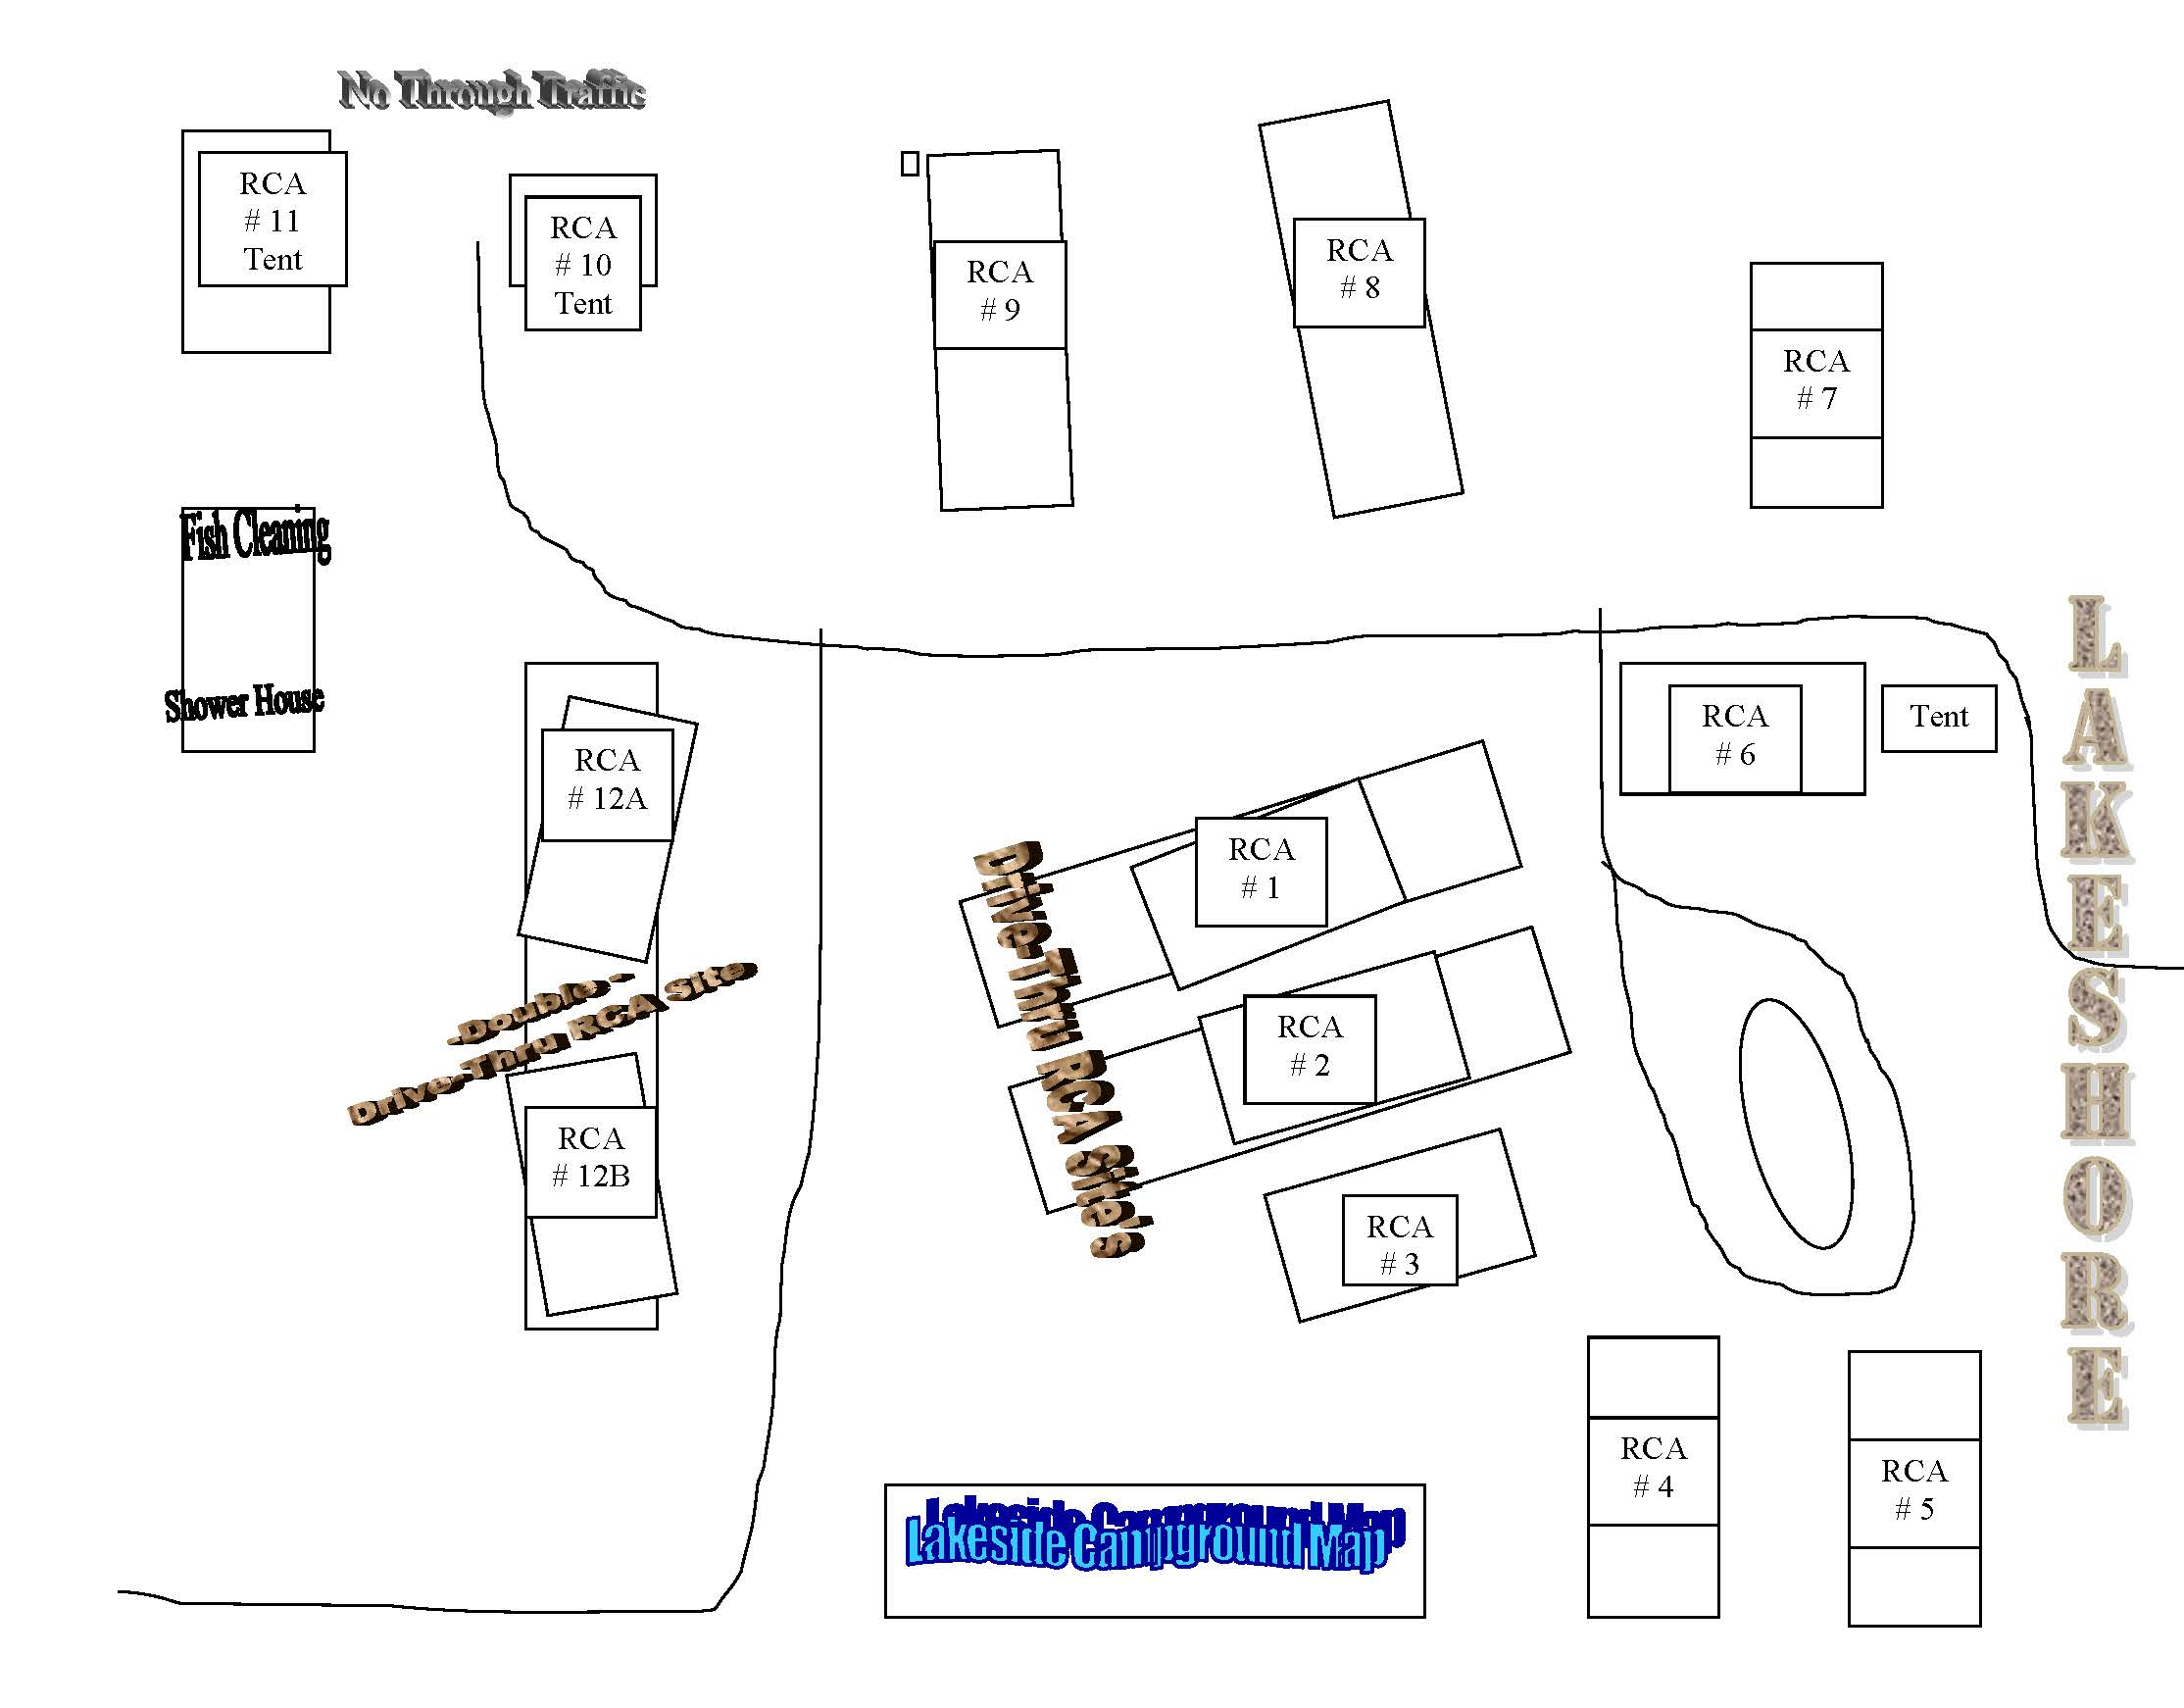 Map of Dale's on Lake of the Woods campground